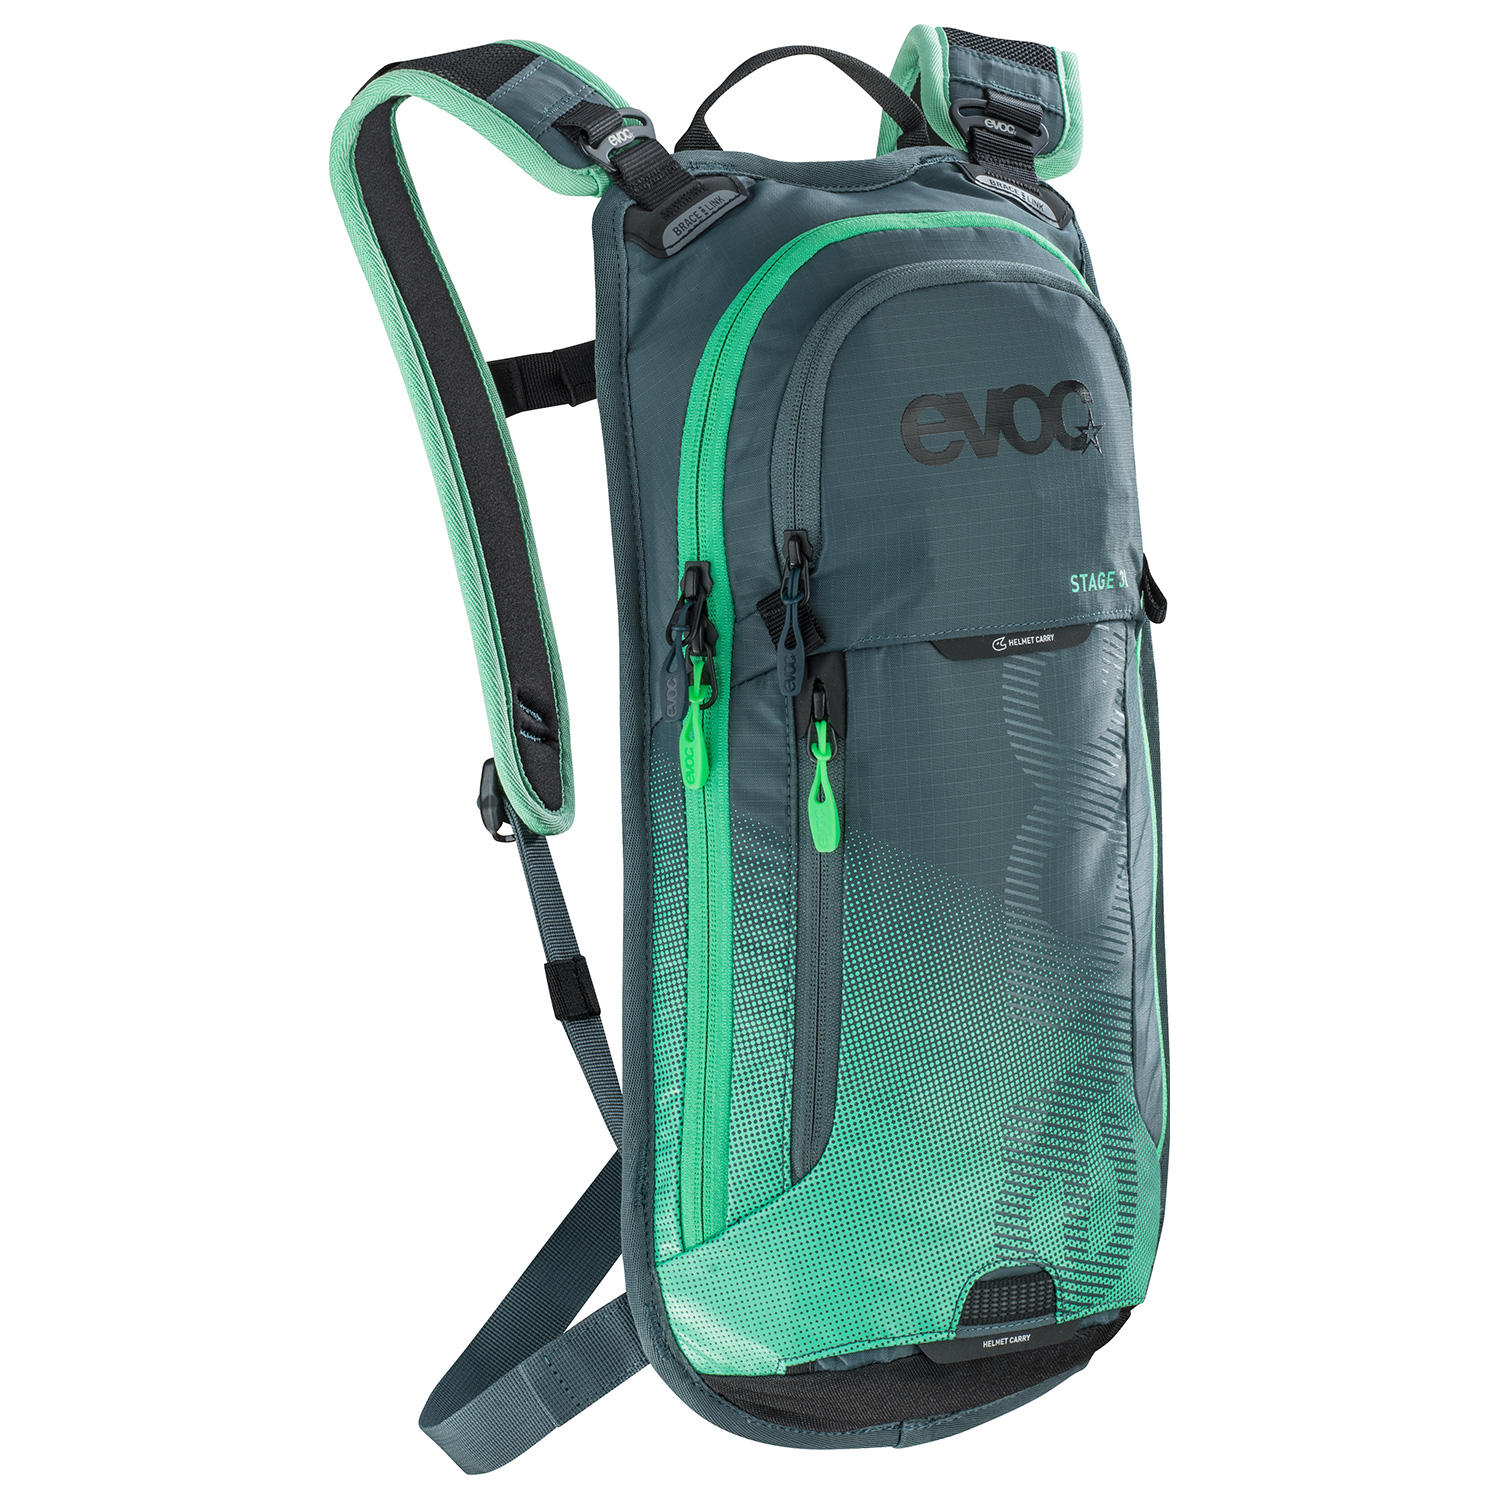 Stage 3L Hydration Pack - If you like riding for a few hours and want to make sure you have enough water and snacks, without breaking your back under the weight of a huge pack? This may be your new best friend.